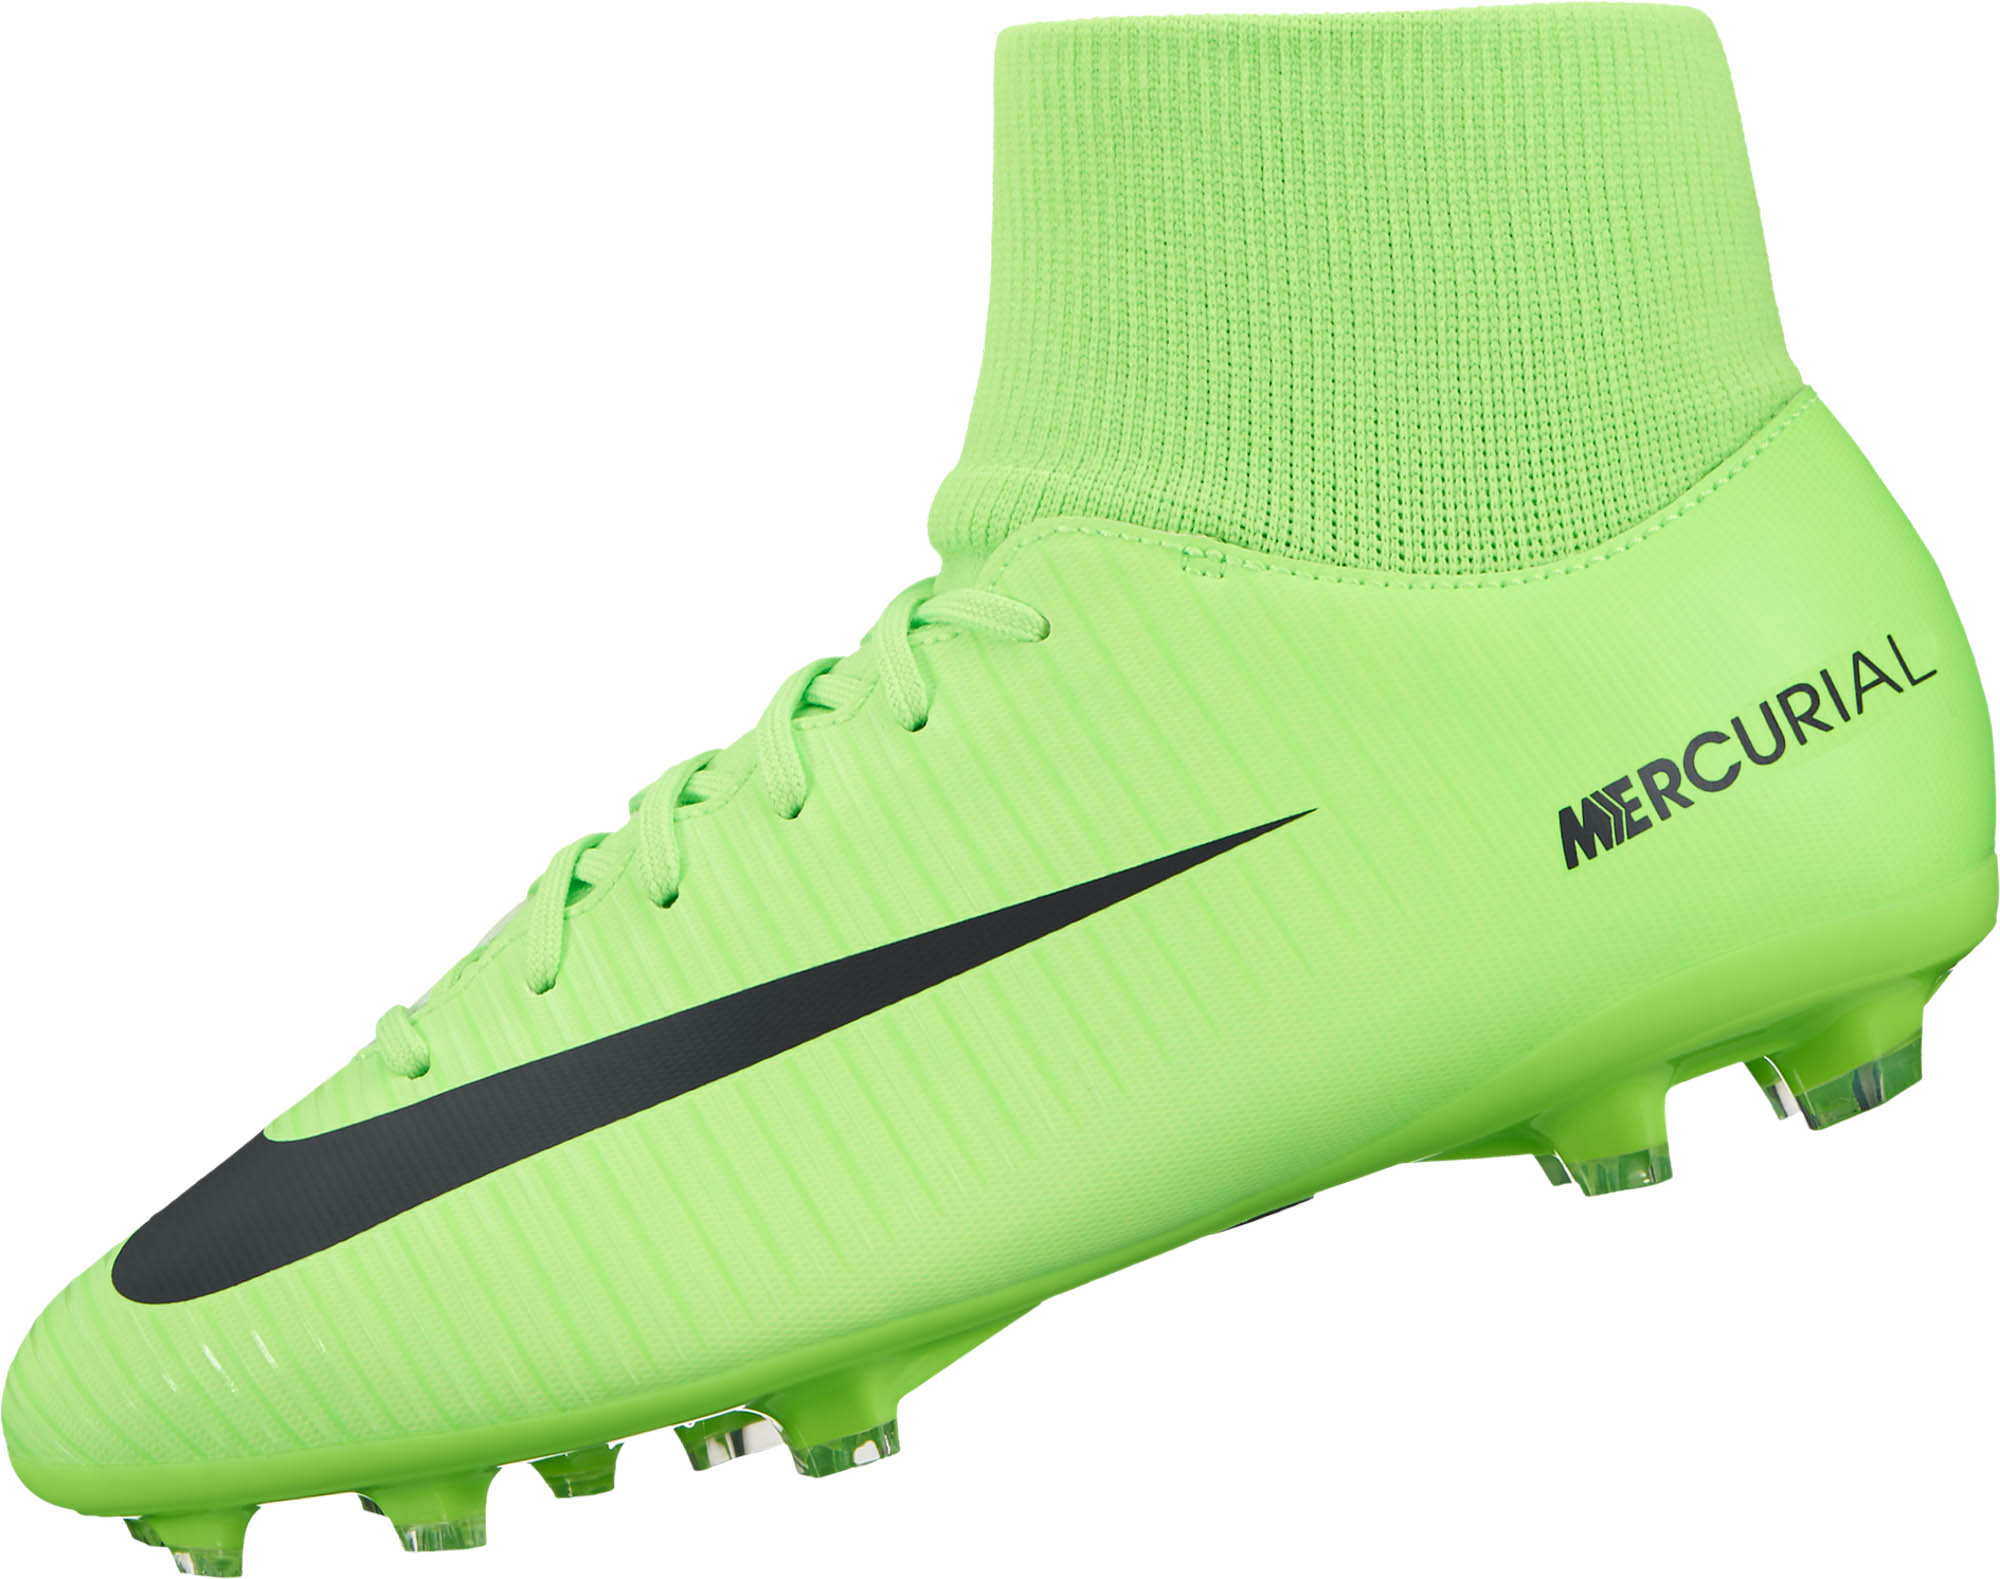 sale retailer 19358 a040f Nike Kids Mercurial Victory VI DF FG Soccer Cleats - Electric ...